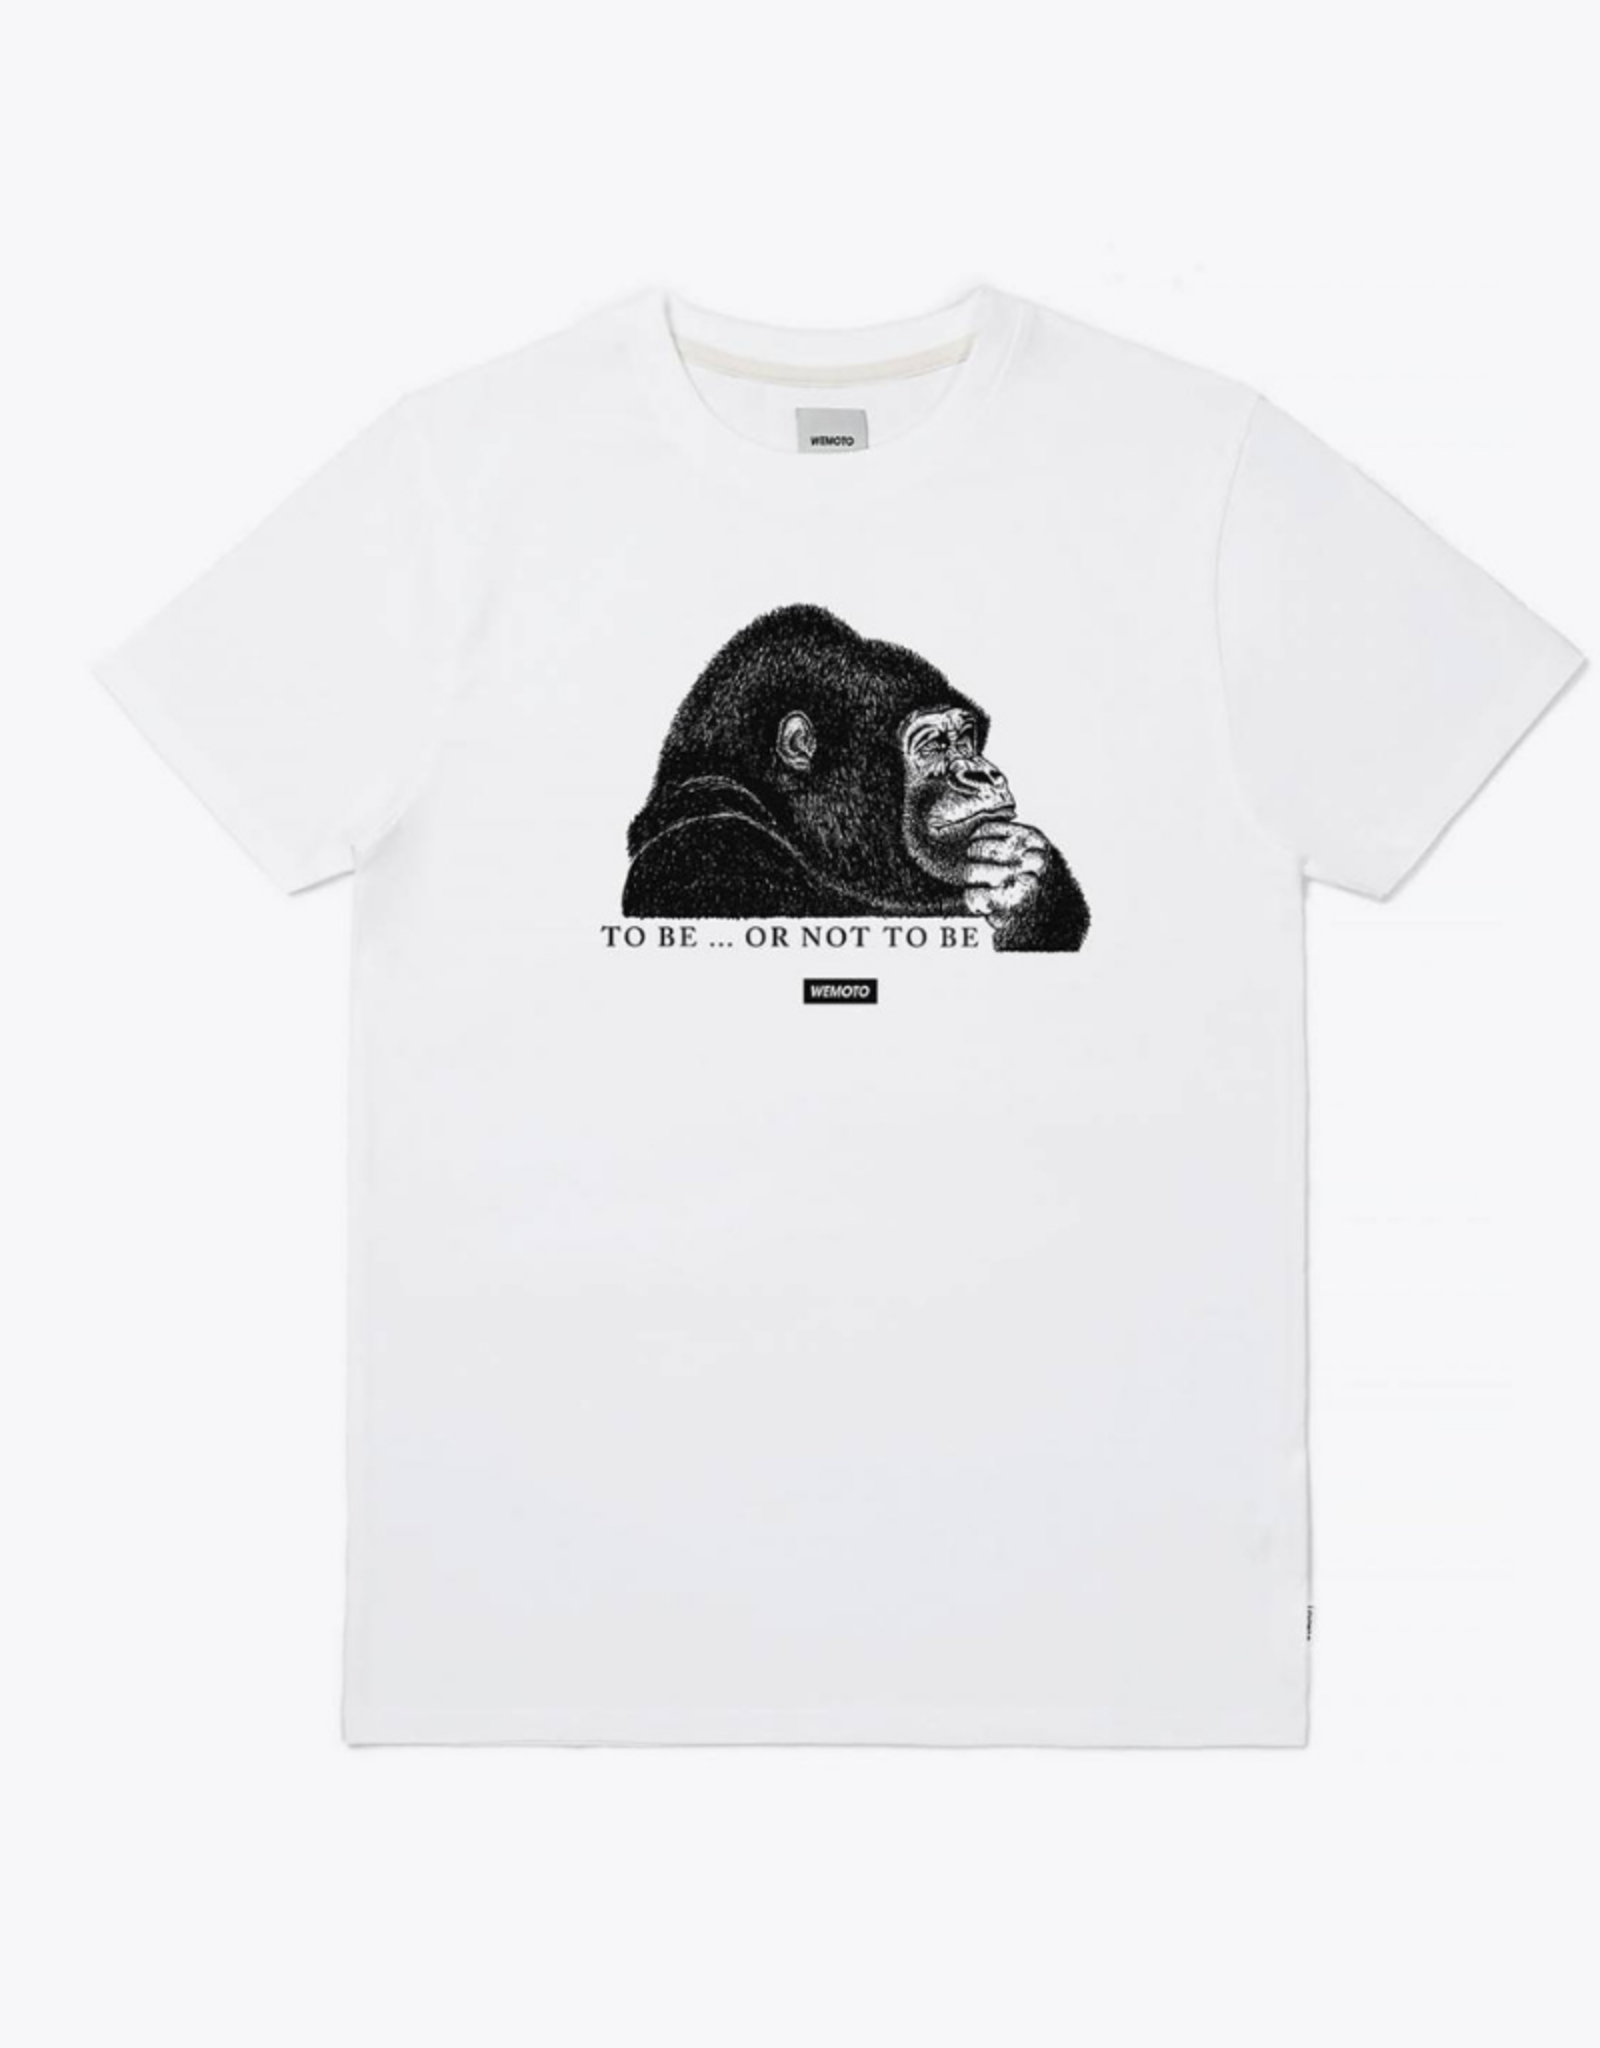 Wemoto - TO BE OR NOT TO BE TEE